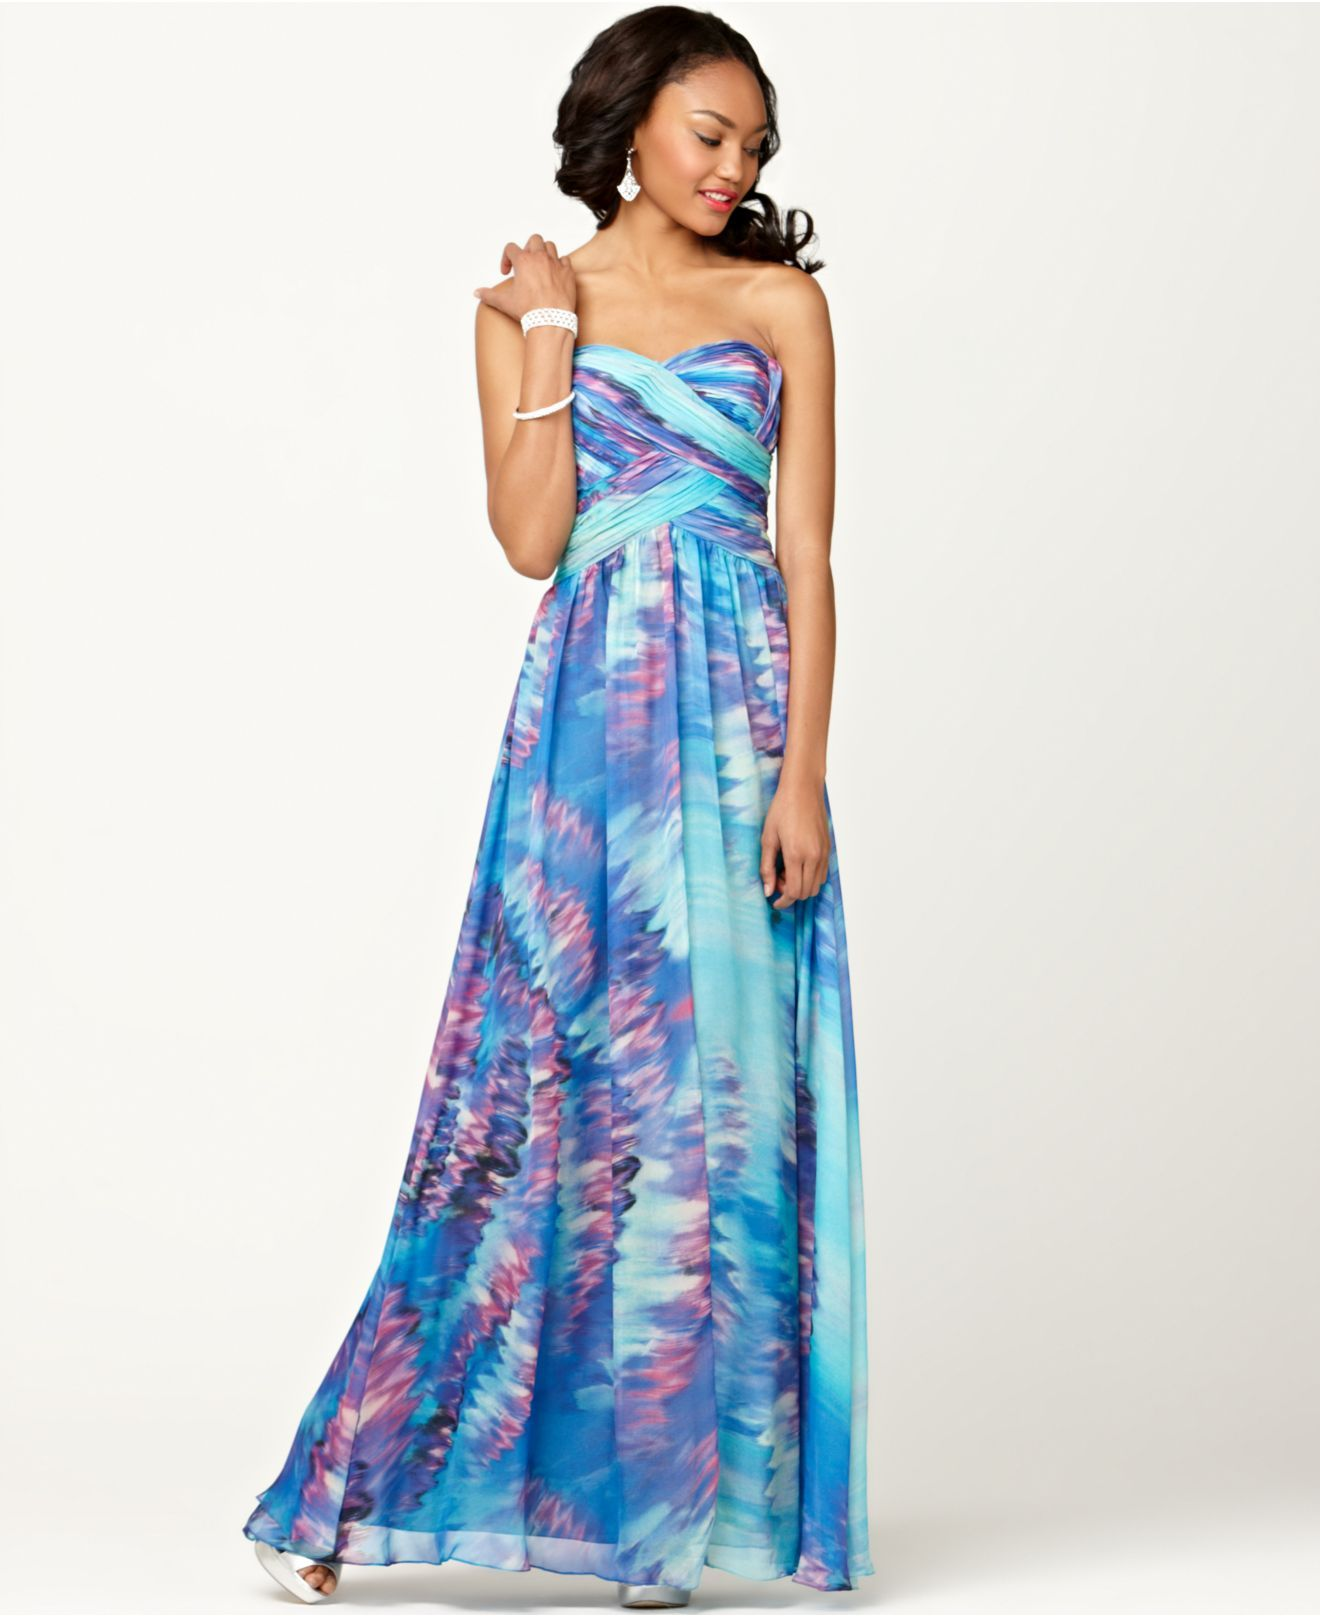 Js boutique dress strapless pleated sweetheart printed evening gown